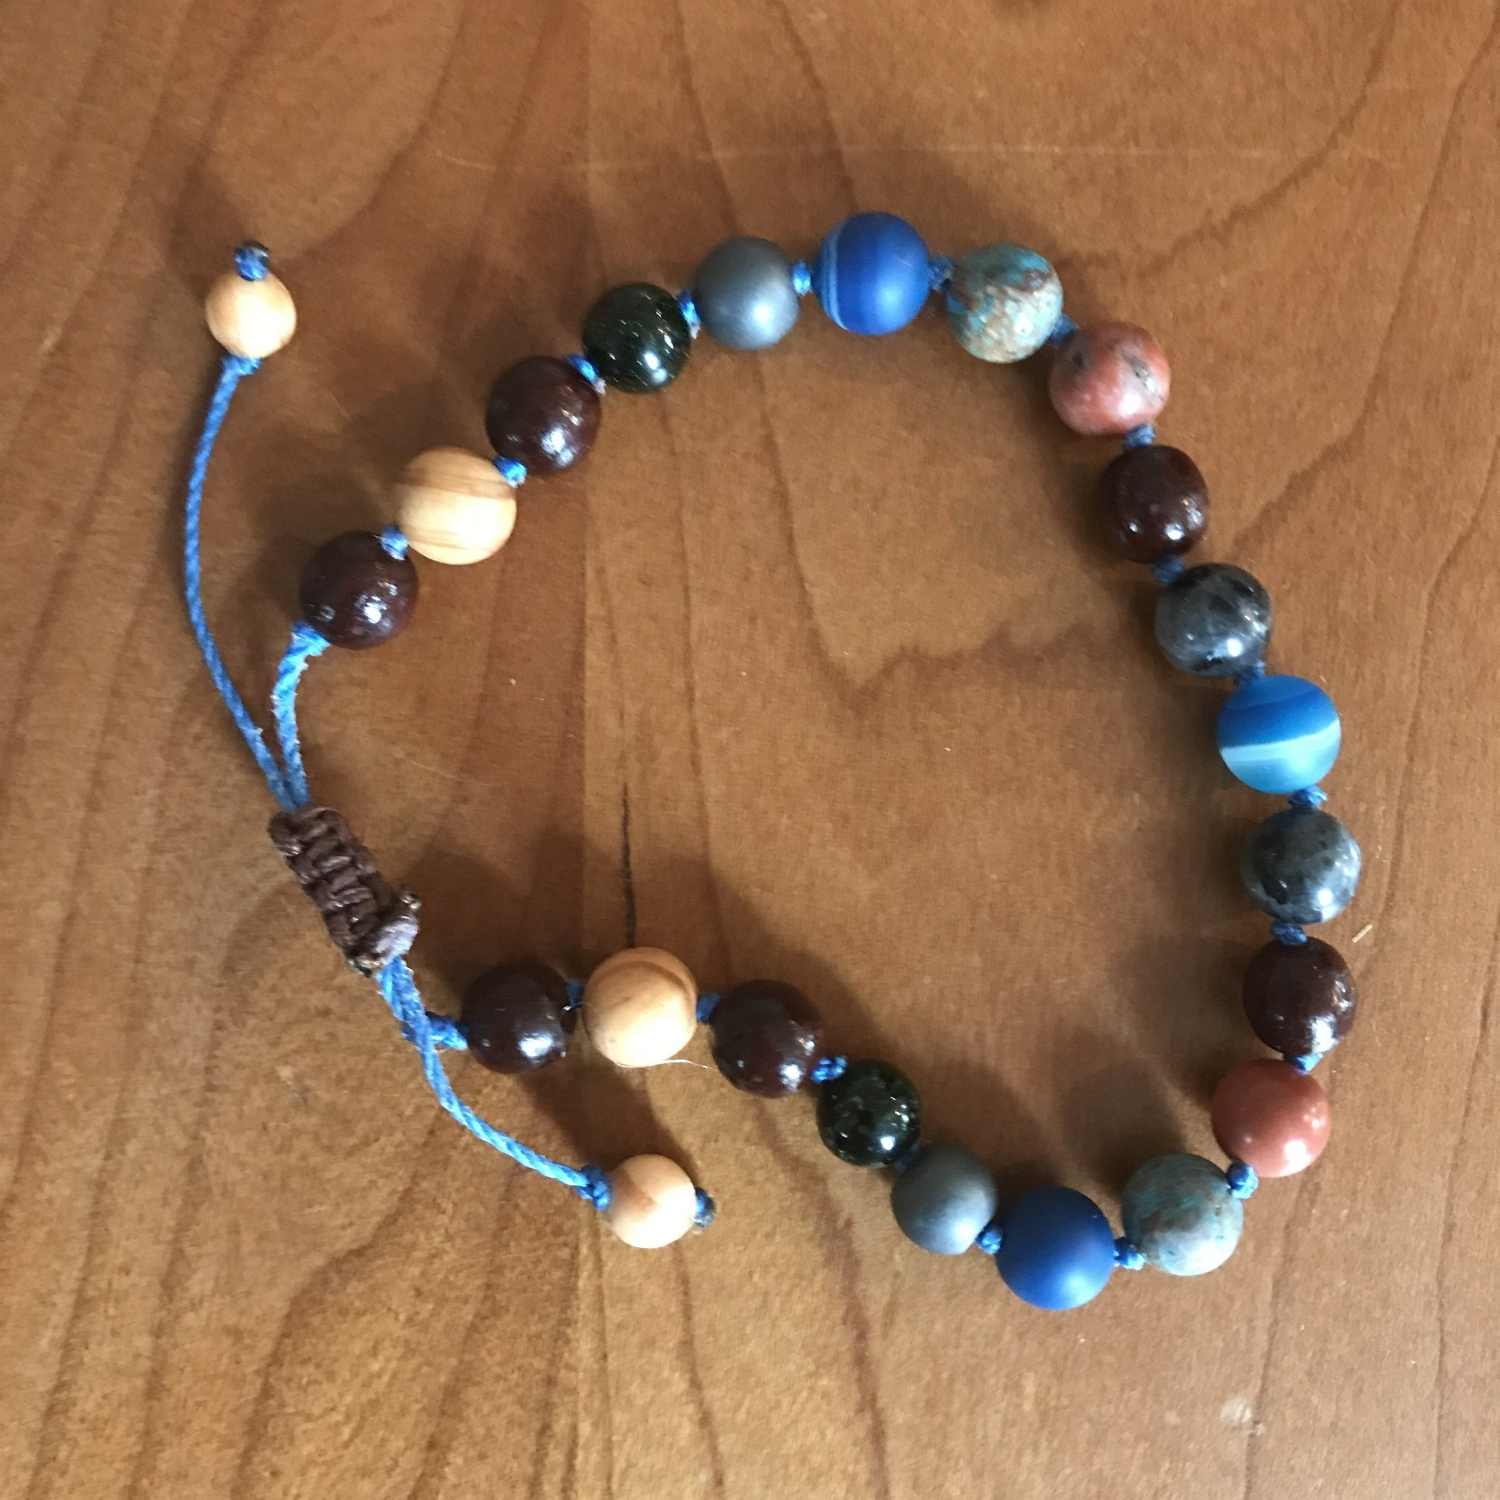 Mala Bracelets - This beautiful bracelet is made of sandalwood, labradorite, green gold speck, hematite, blue stripe agate, red picasso jasper, and sea sediment jasper.   $45 USD.